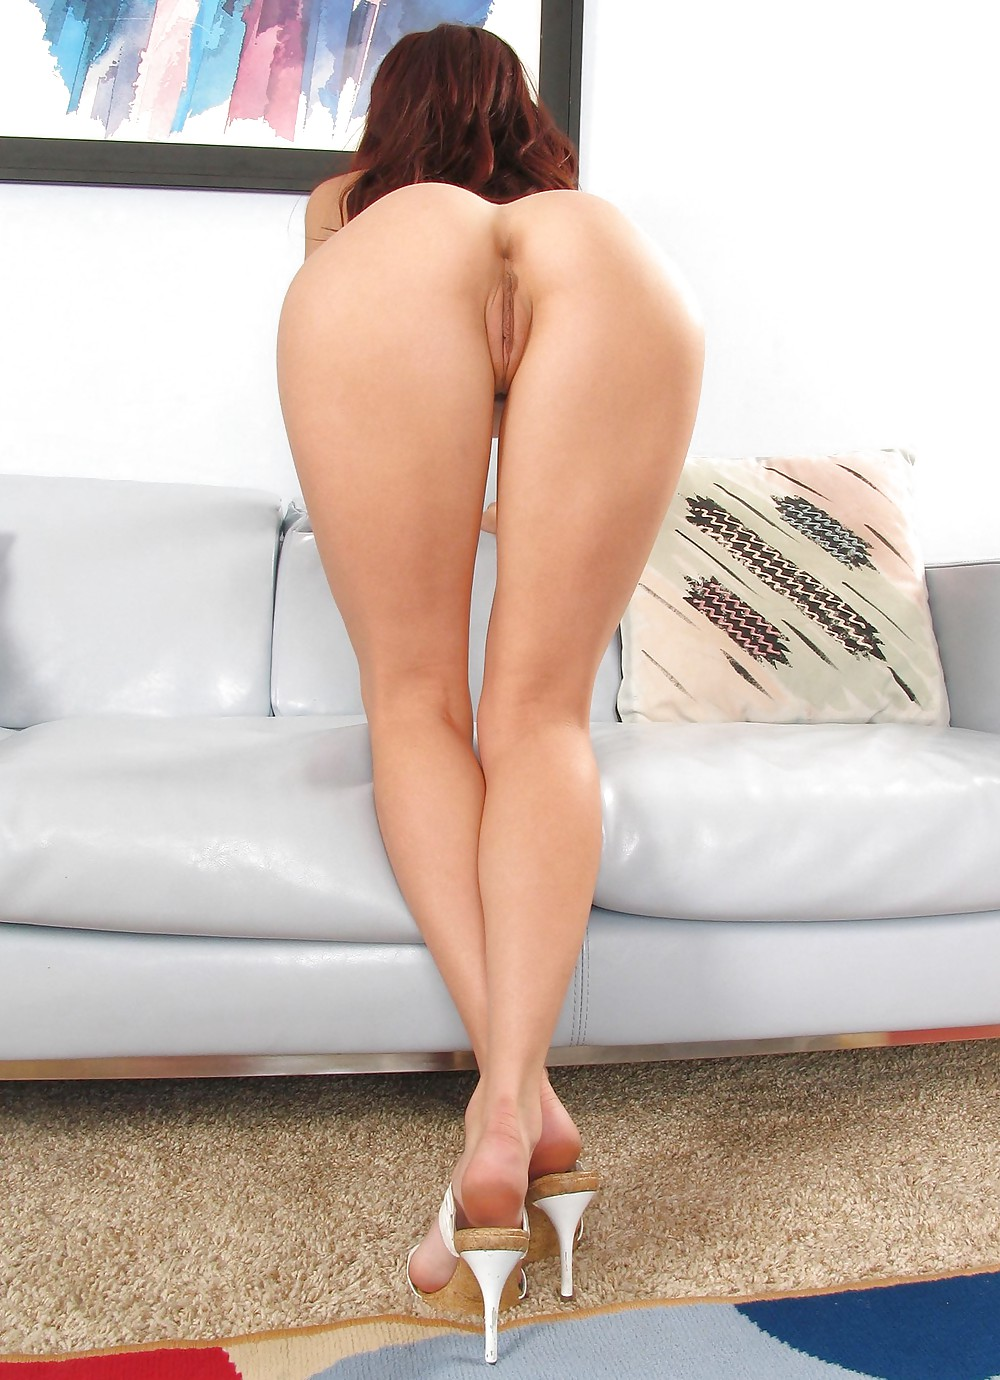 Pussy And Legs Porn Pics